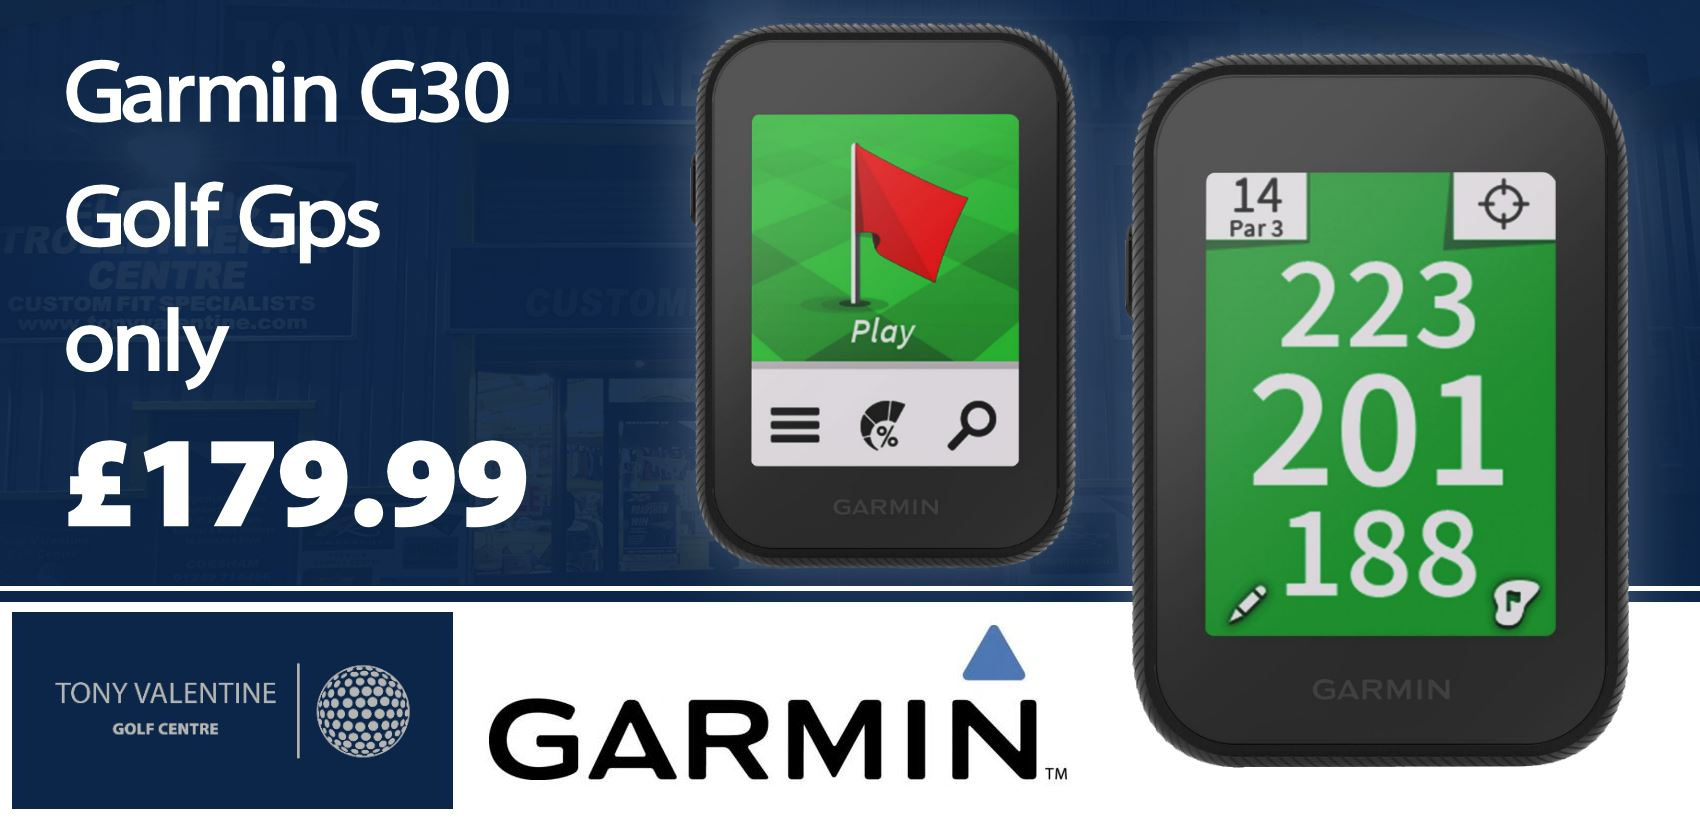 Garmin G30 Golf Gps